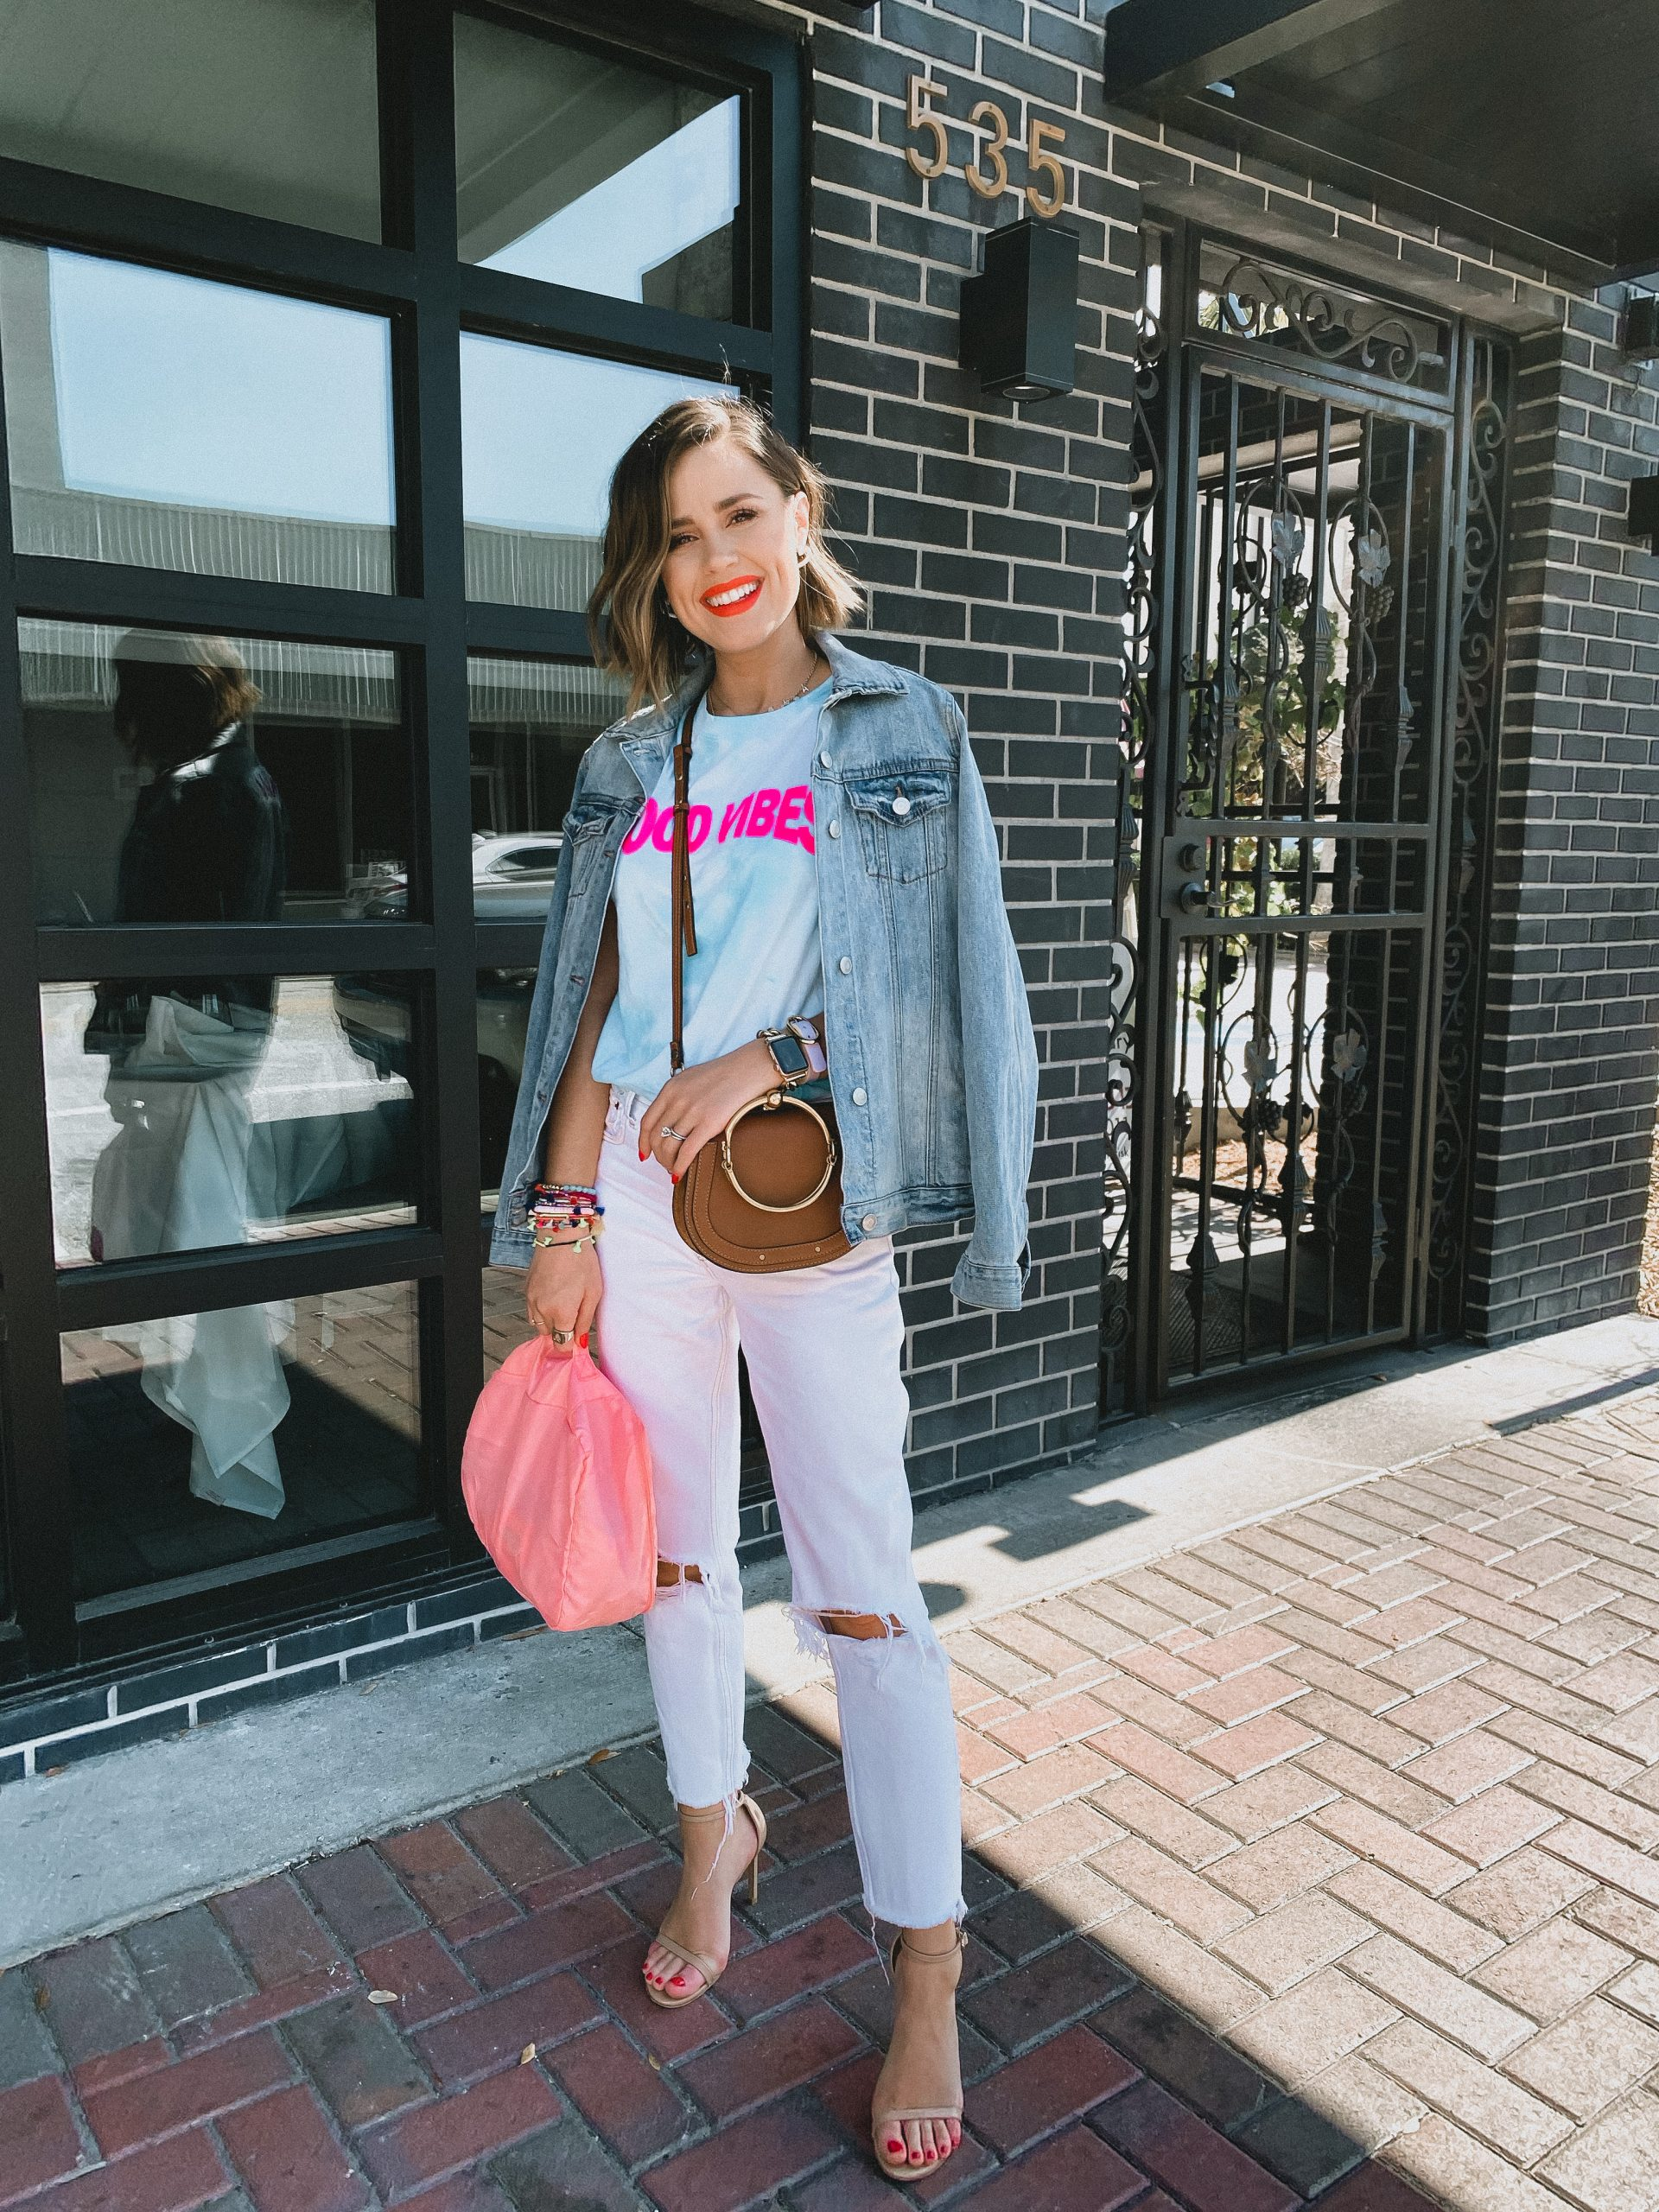 Houston fashion blogger Elly brown wears a tie-dye graphic tee with distressed mom jeans